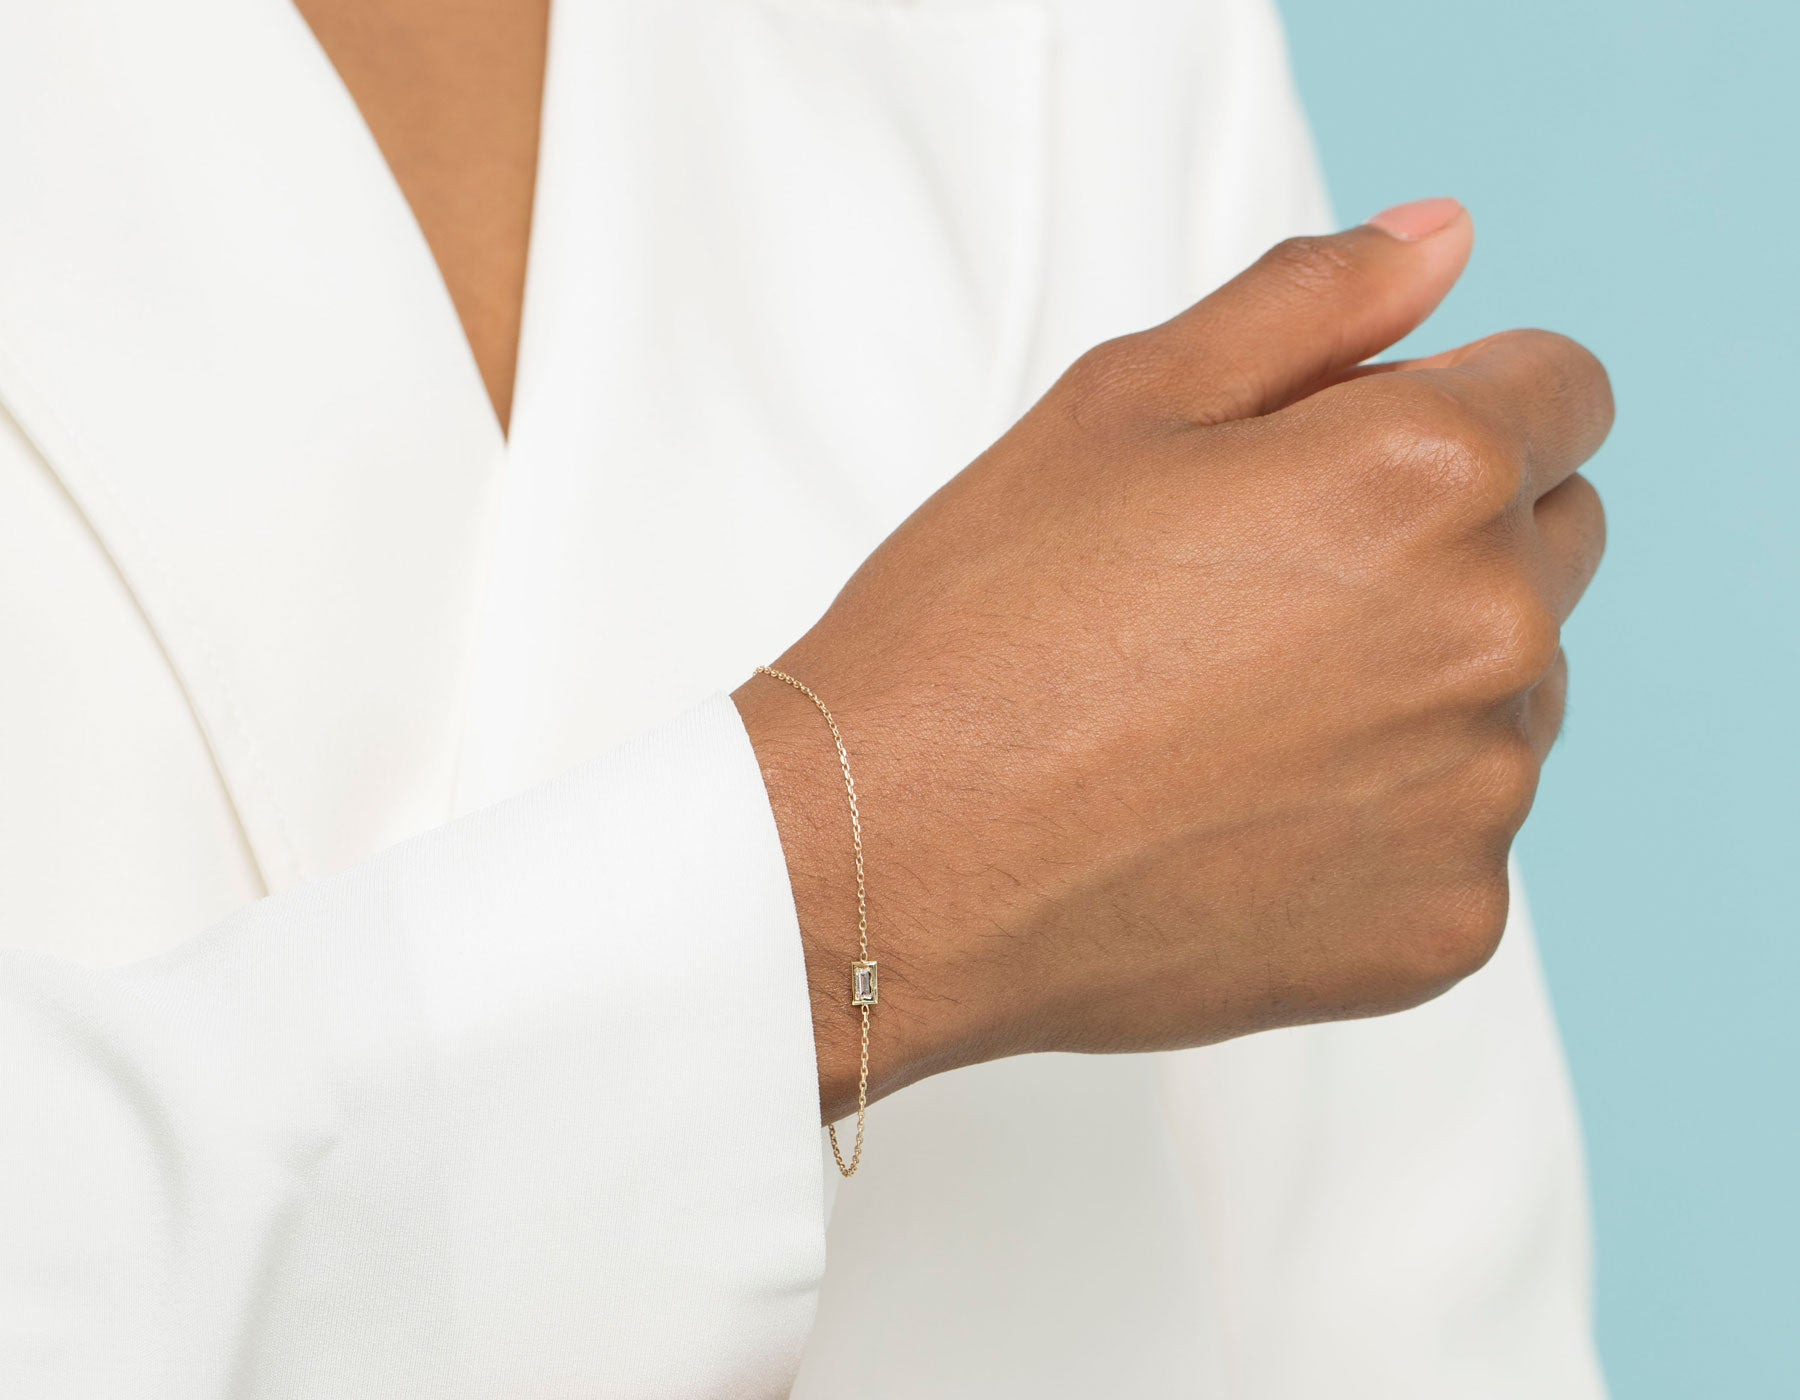 Model wearing dainty minimalist Baguette Diamond Bezel Bracelet by Vrai, 14K Yellow Gold